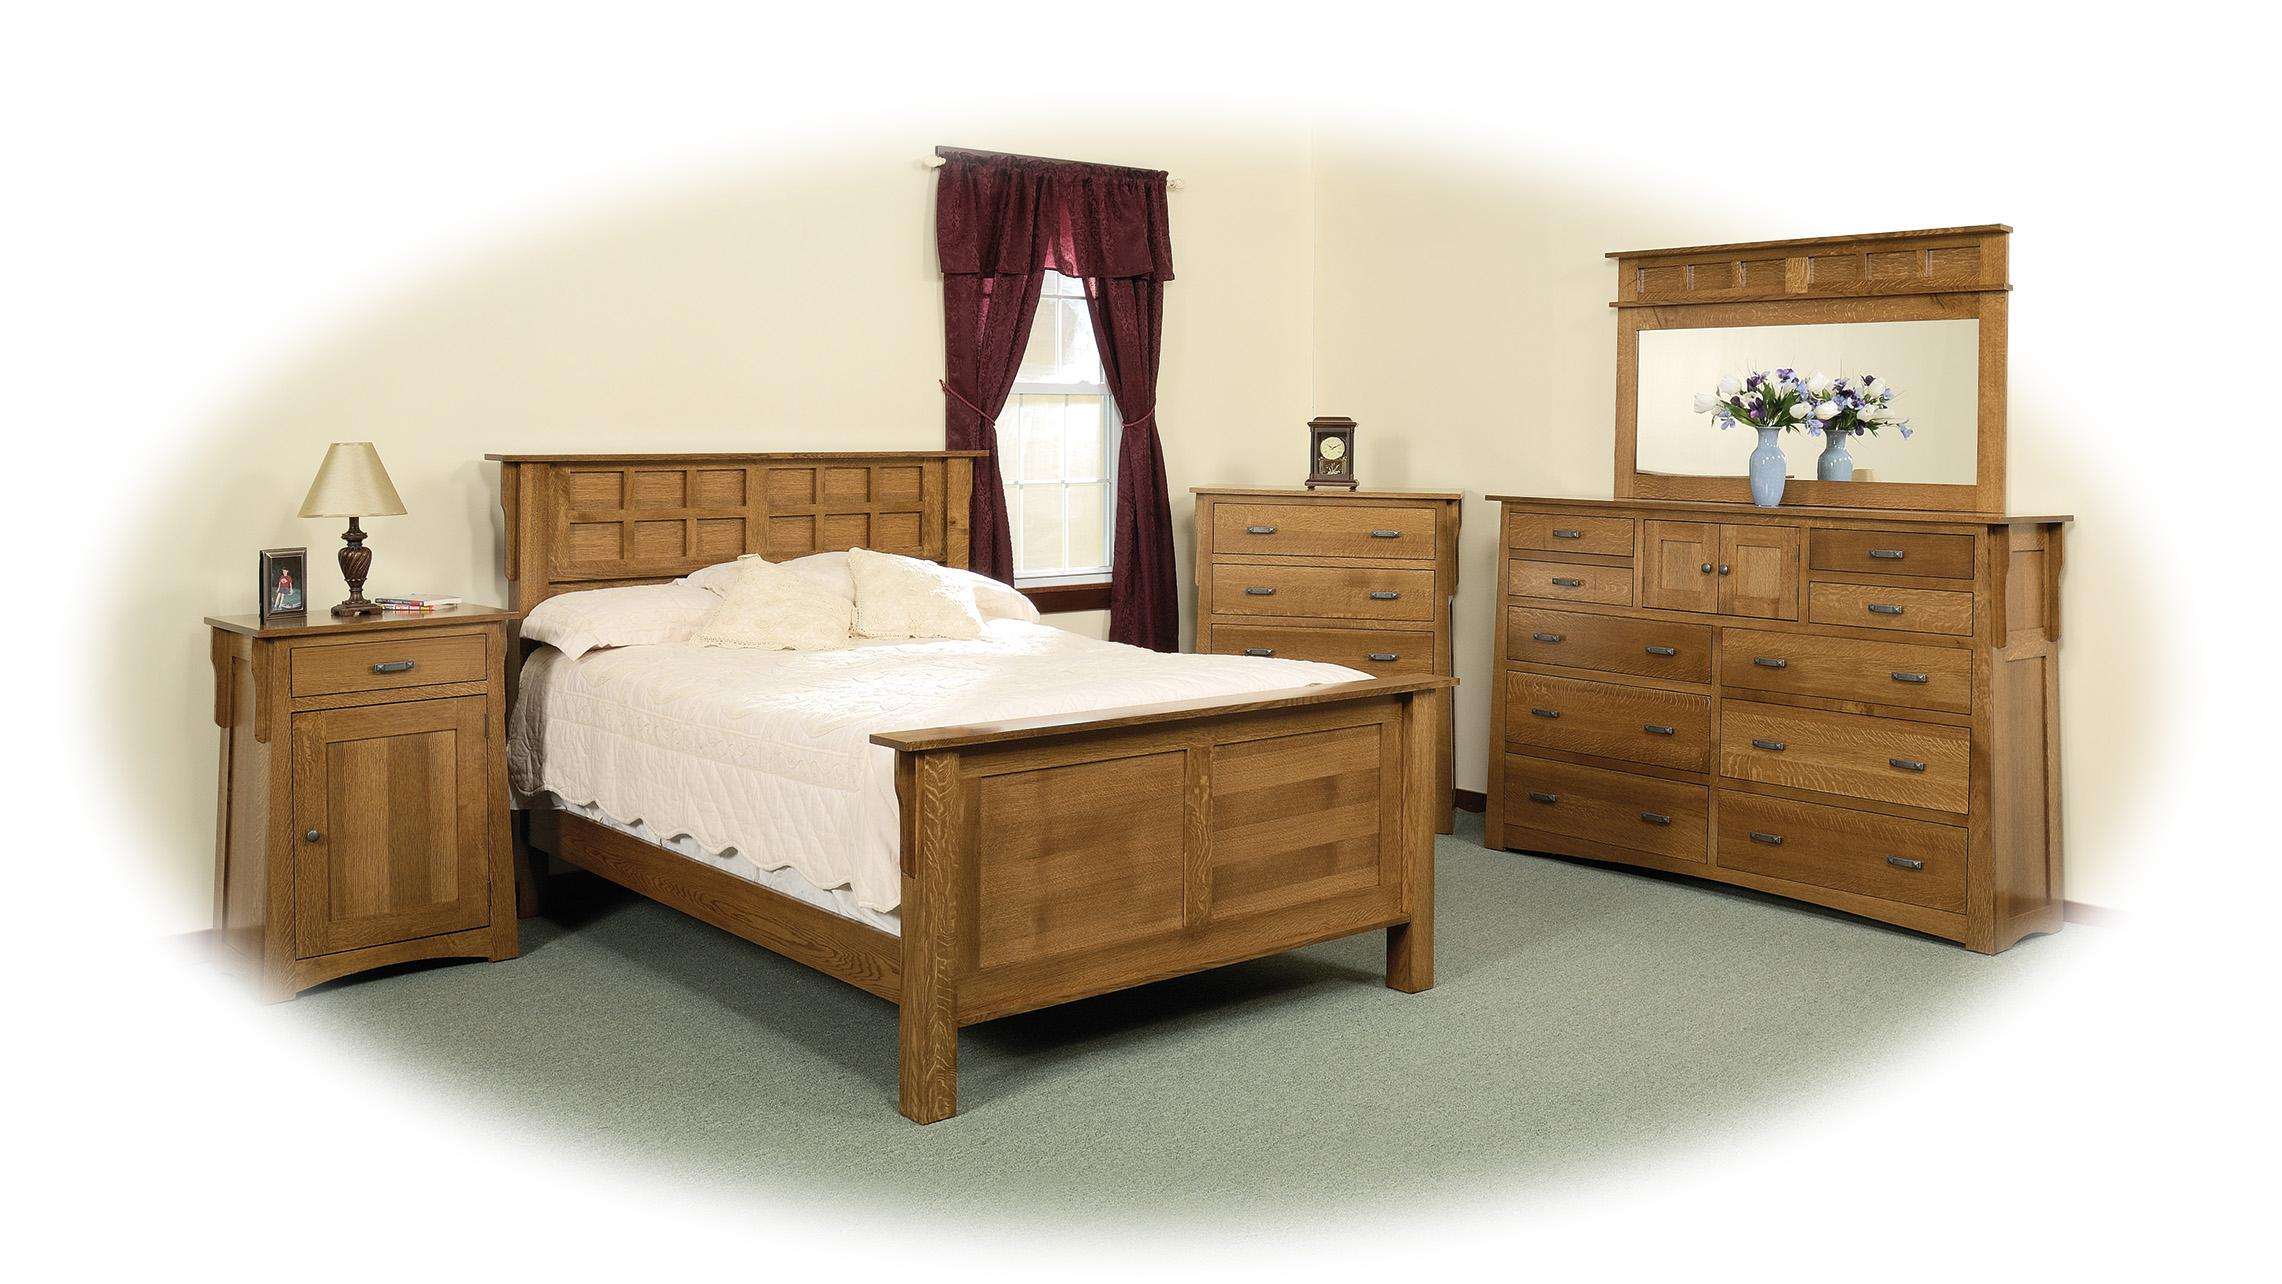 Quarter Sawn Oak Bedroom Furniture Daniels Amish Arts And Crafts Queen Solid Wood Pedestal Bed With